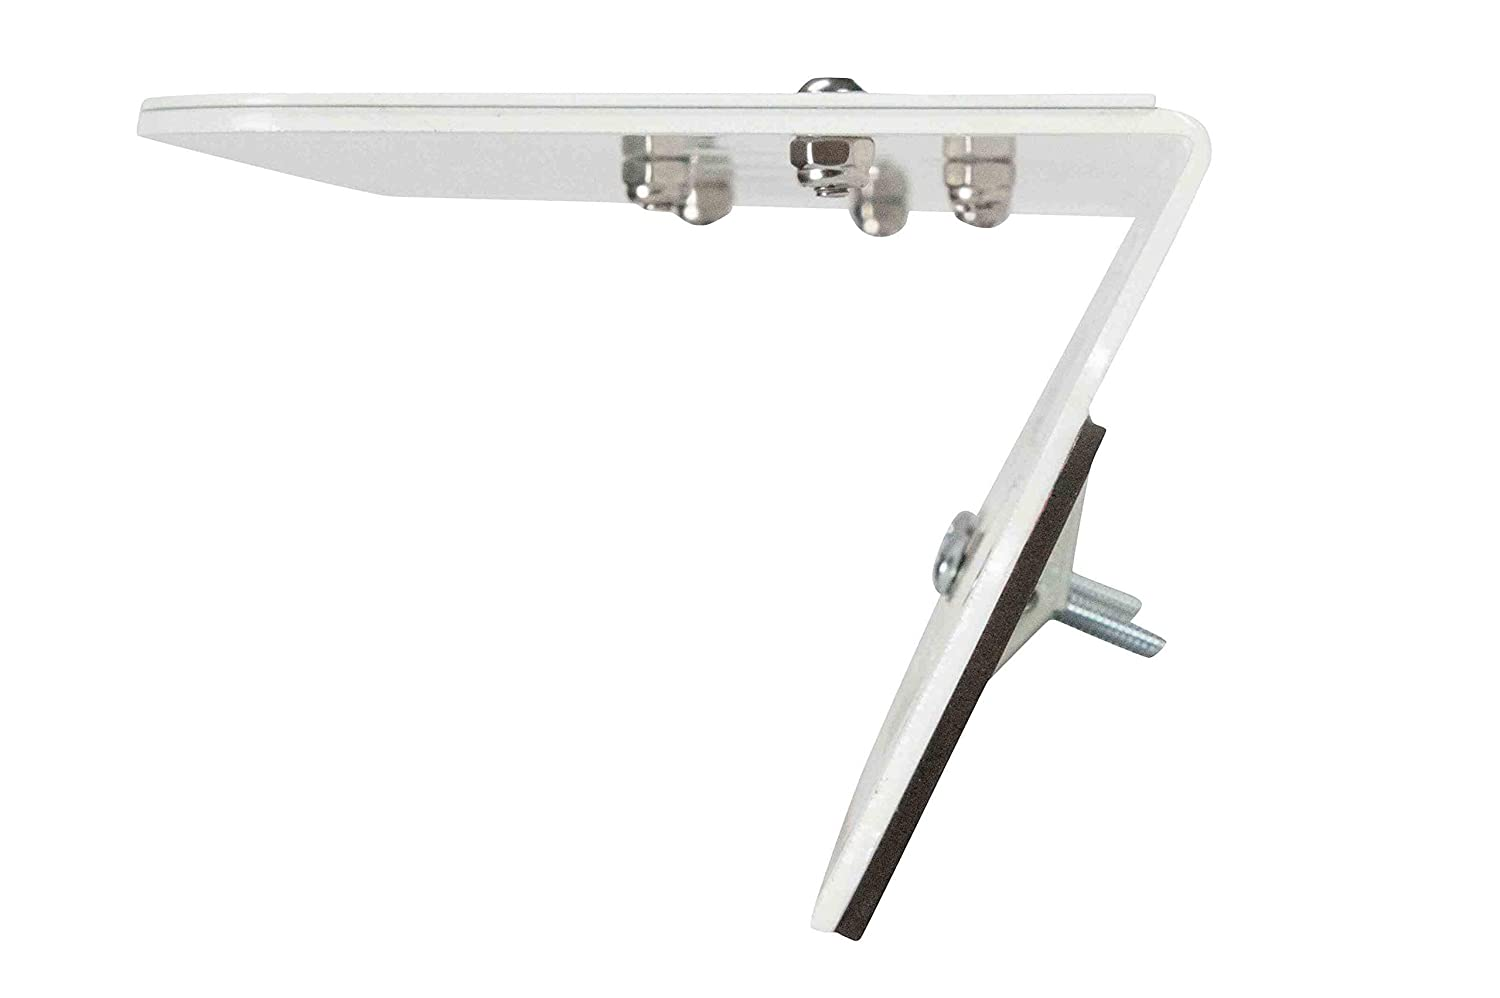 Ford F150 Aluminum Body Trucks-NO Drilling Required Magnetic Antenna Mounting Plate for 2015